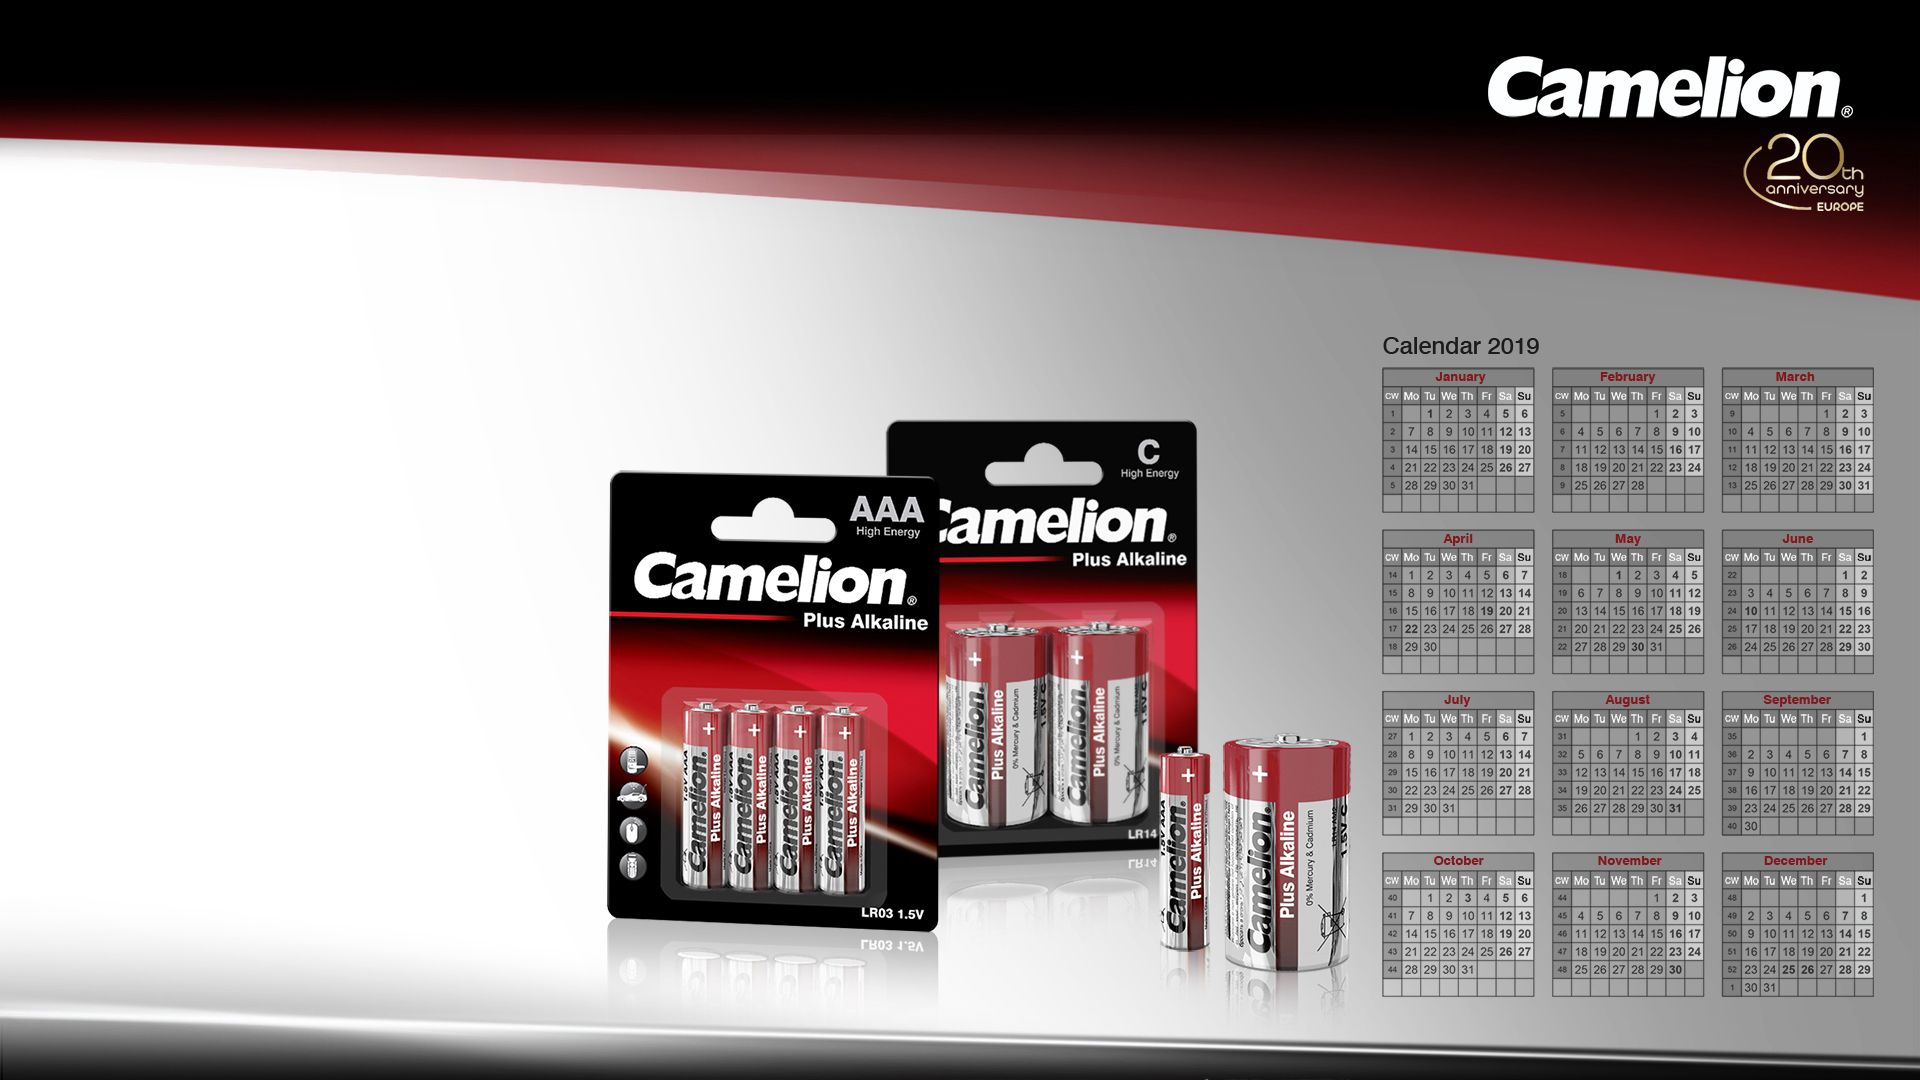 Wallpapers | Business Zone | Camelion